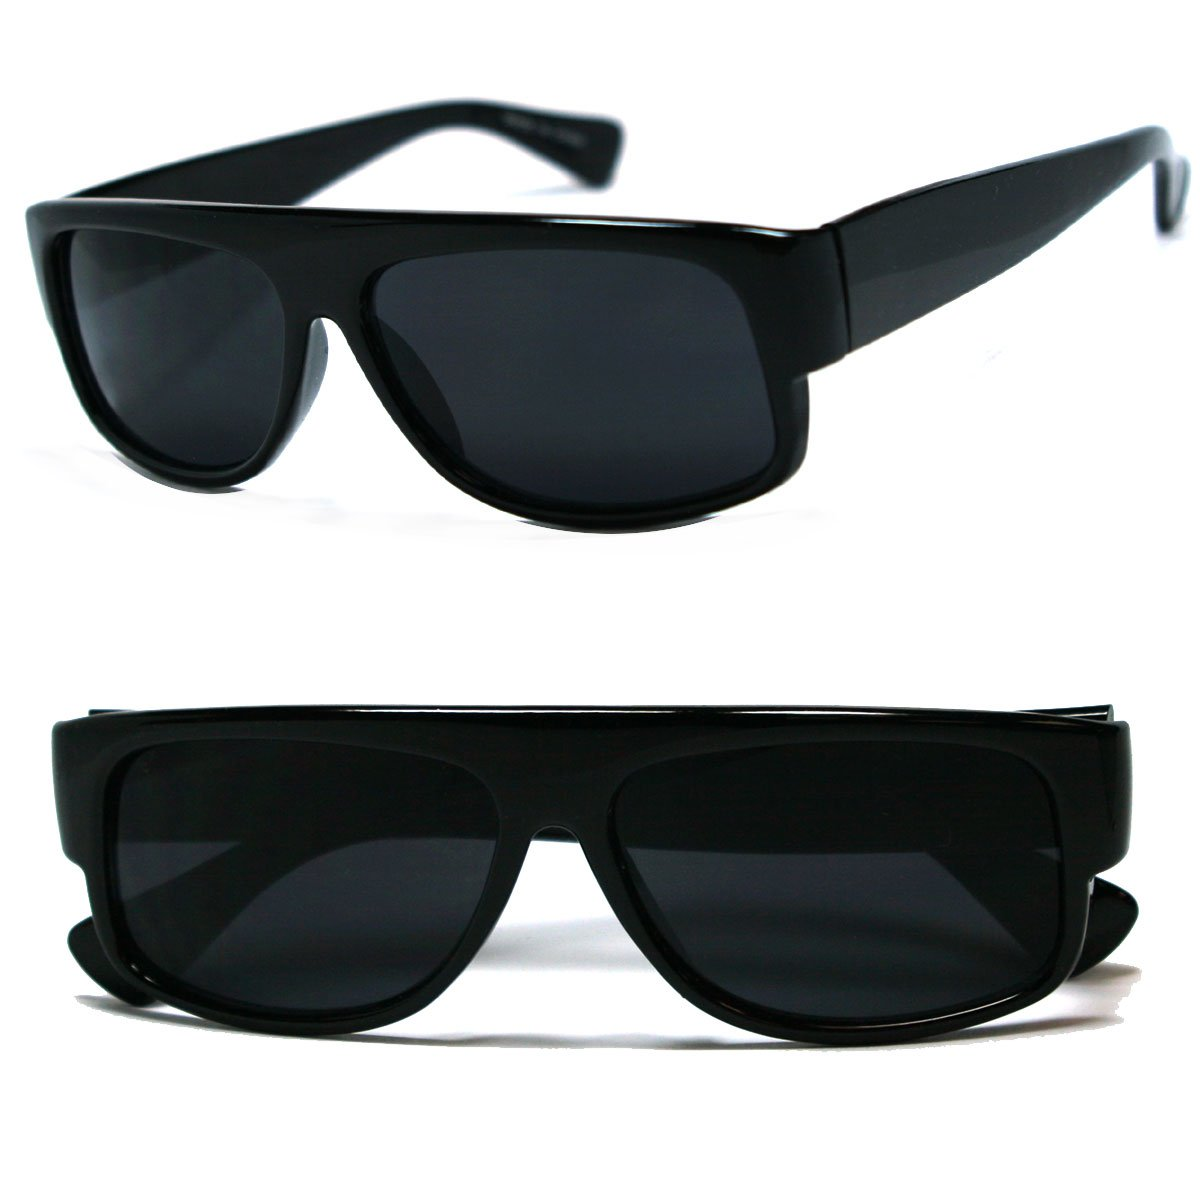 Original OG Mad Dogger Locs Shades Sunglasses w/ Super Dark Lens (Black) 8443-BLK2